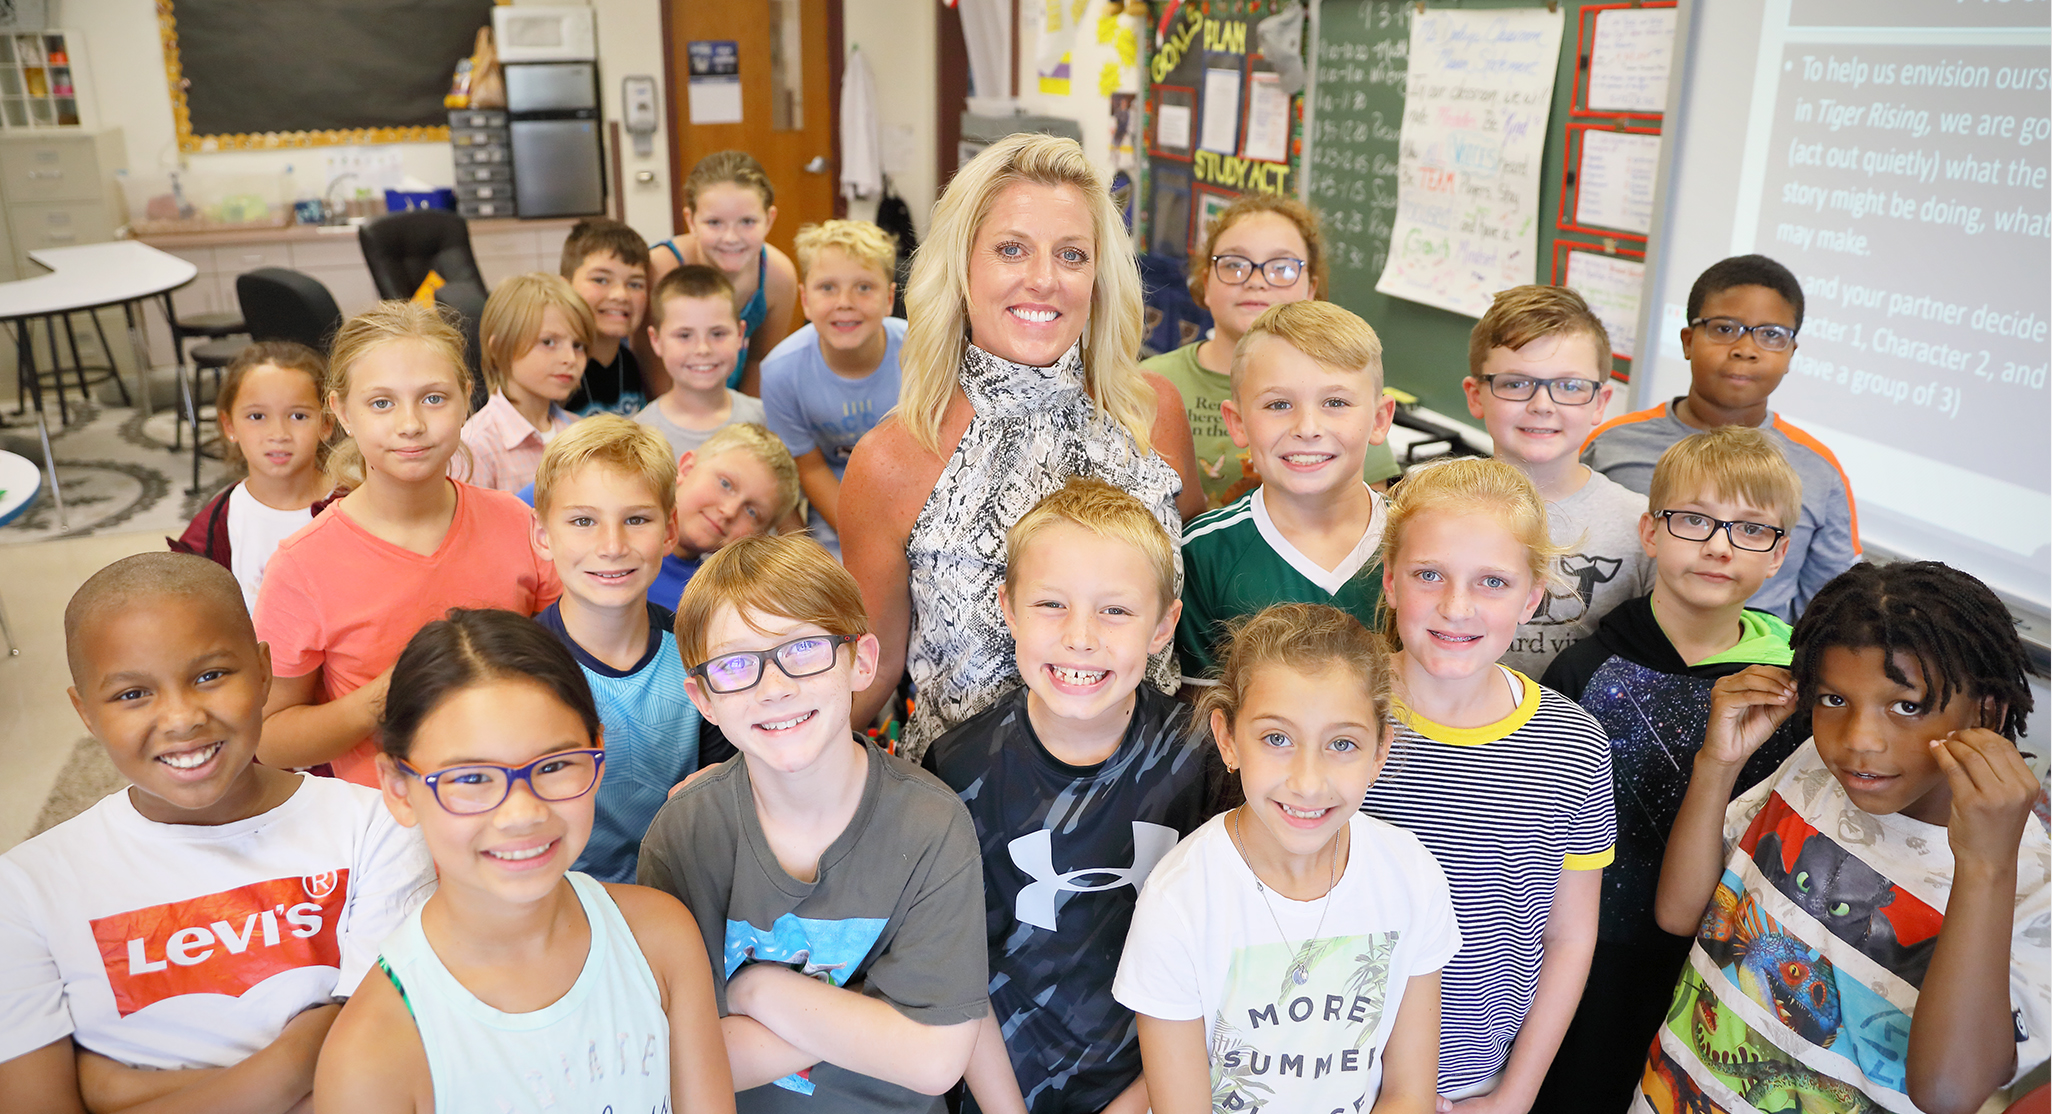 Julie Dooley and her fourth grade class